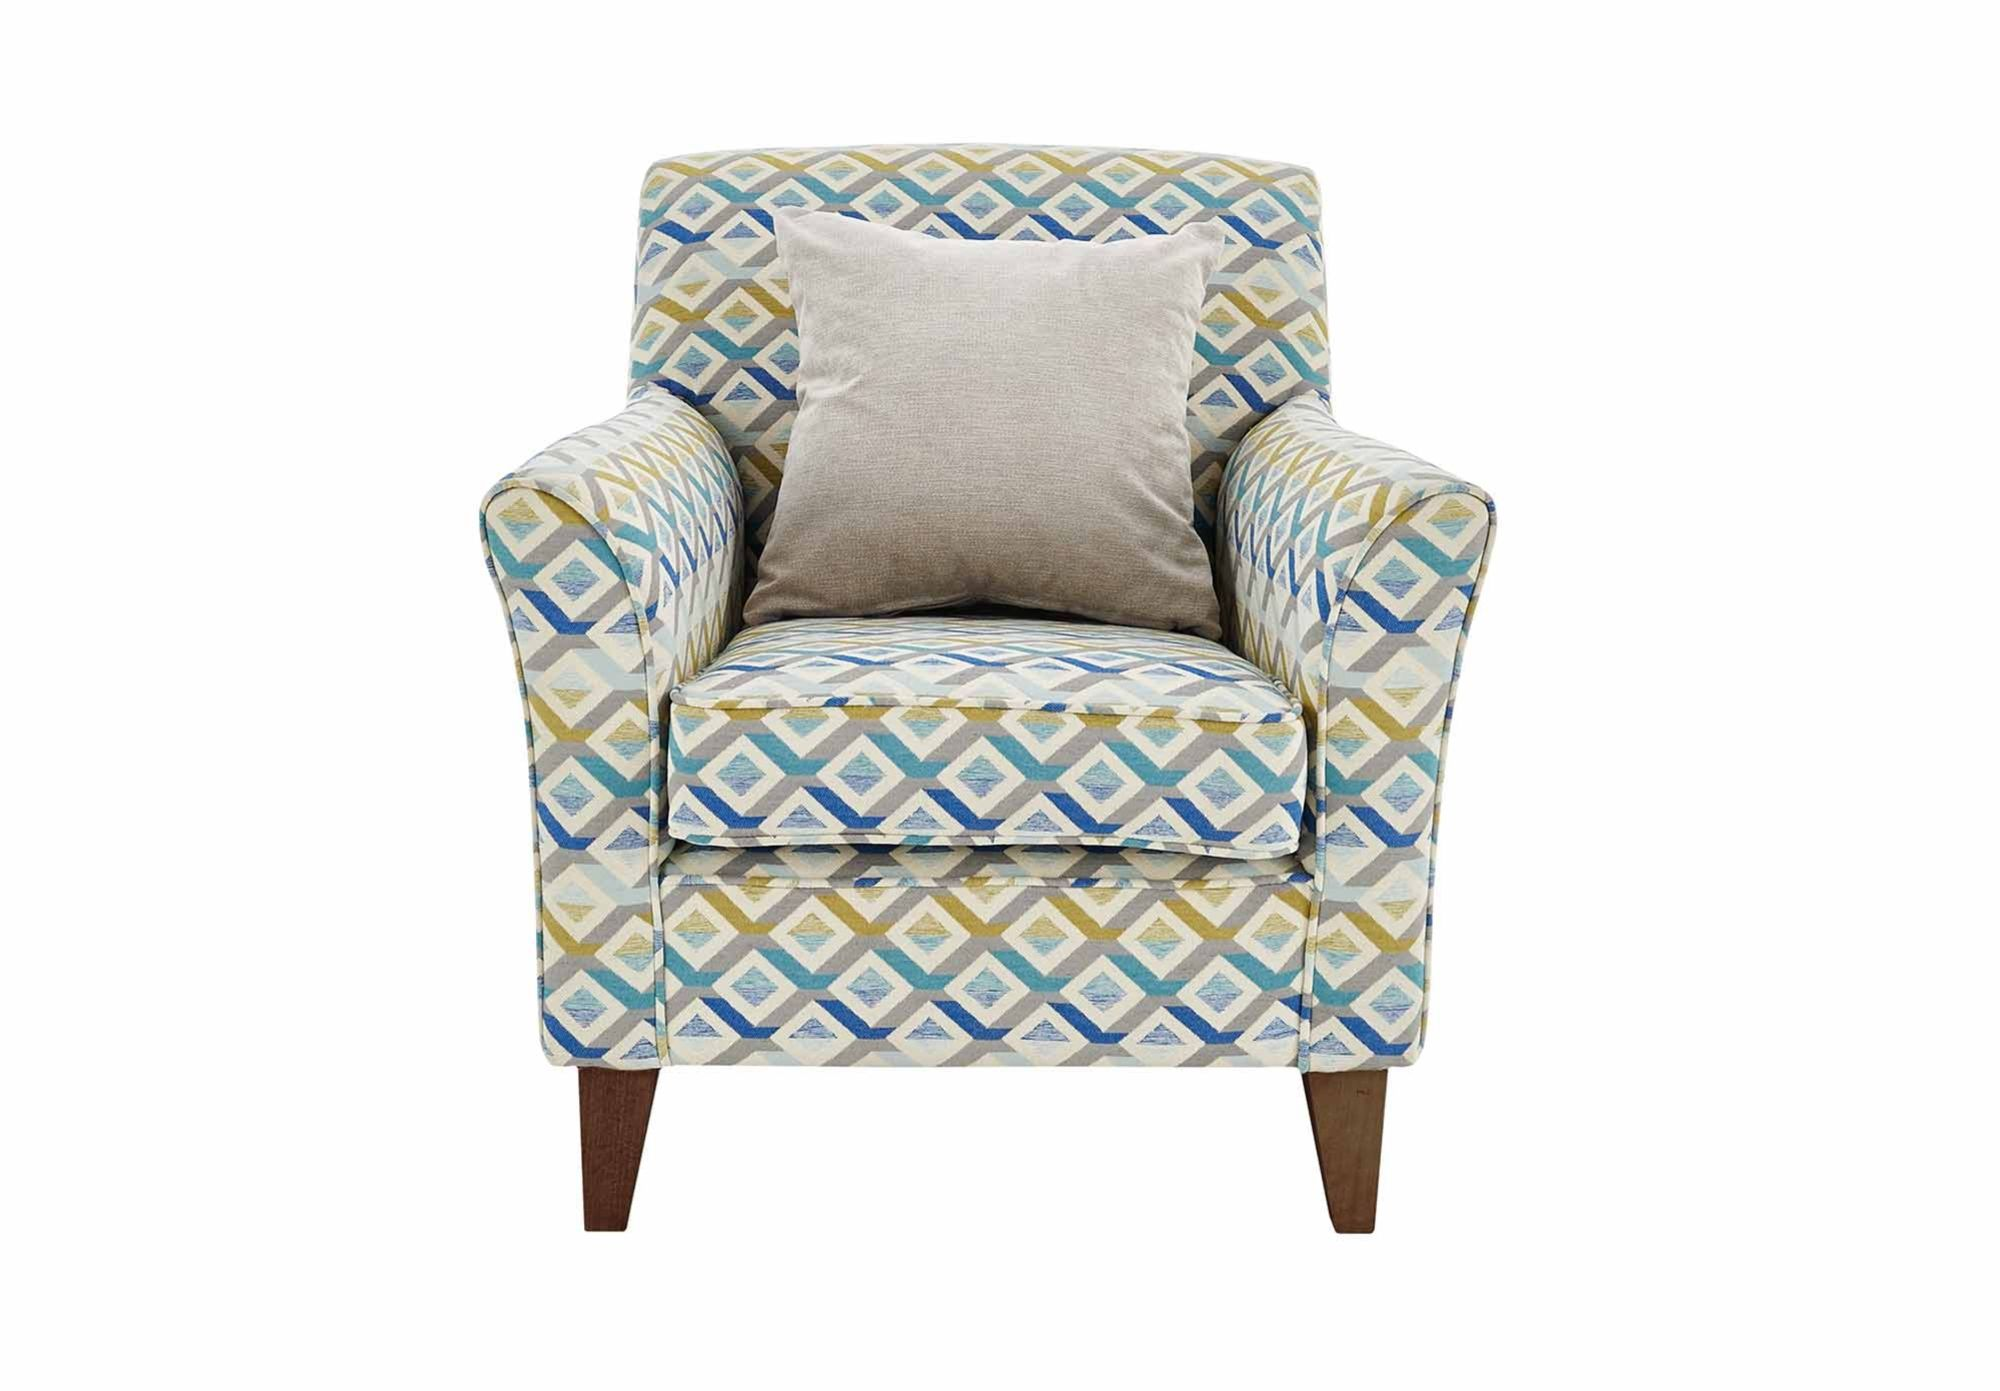 Accent Chair Copenhagen Living Room Furniture Sets Amp